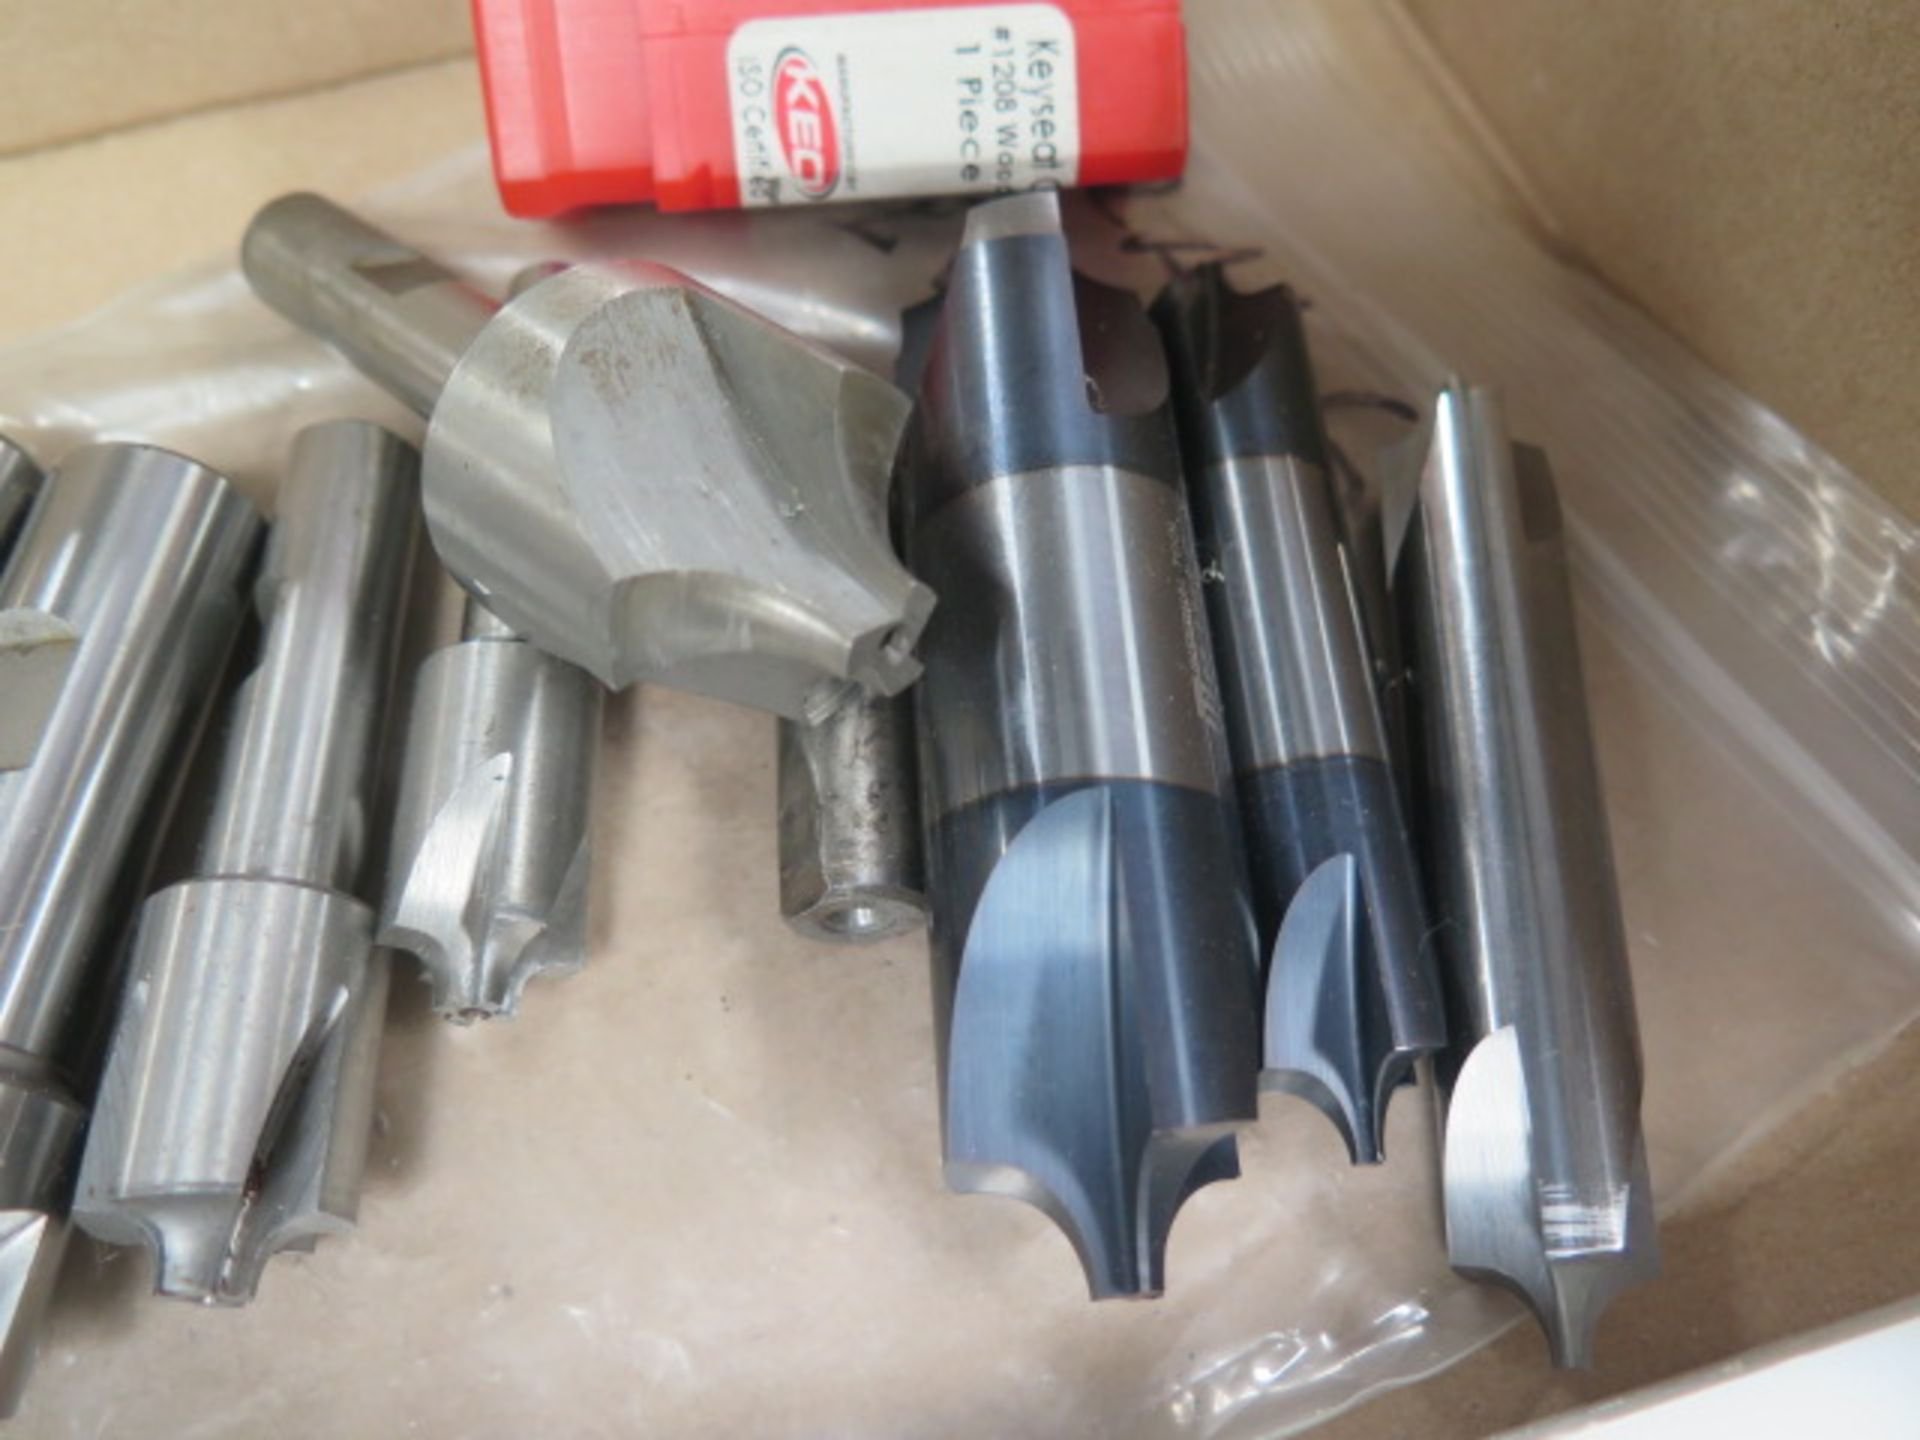 Radius Cutters, Thread Mills, Key-Slot Cutters and Angle Mills (SOLD AS-IS - NO WARRANTY) - Image 5 of 6